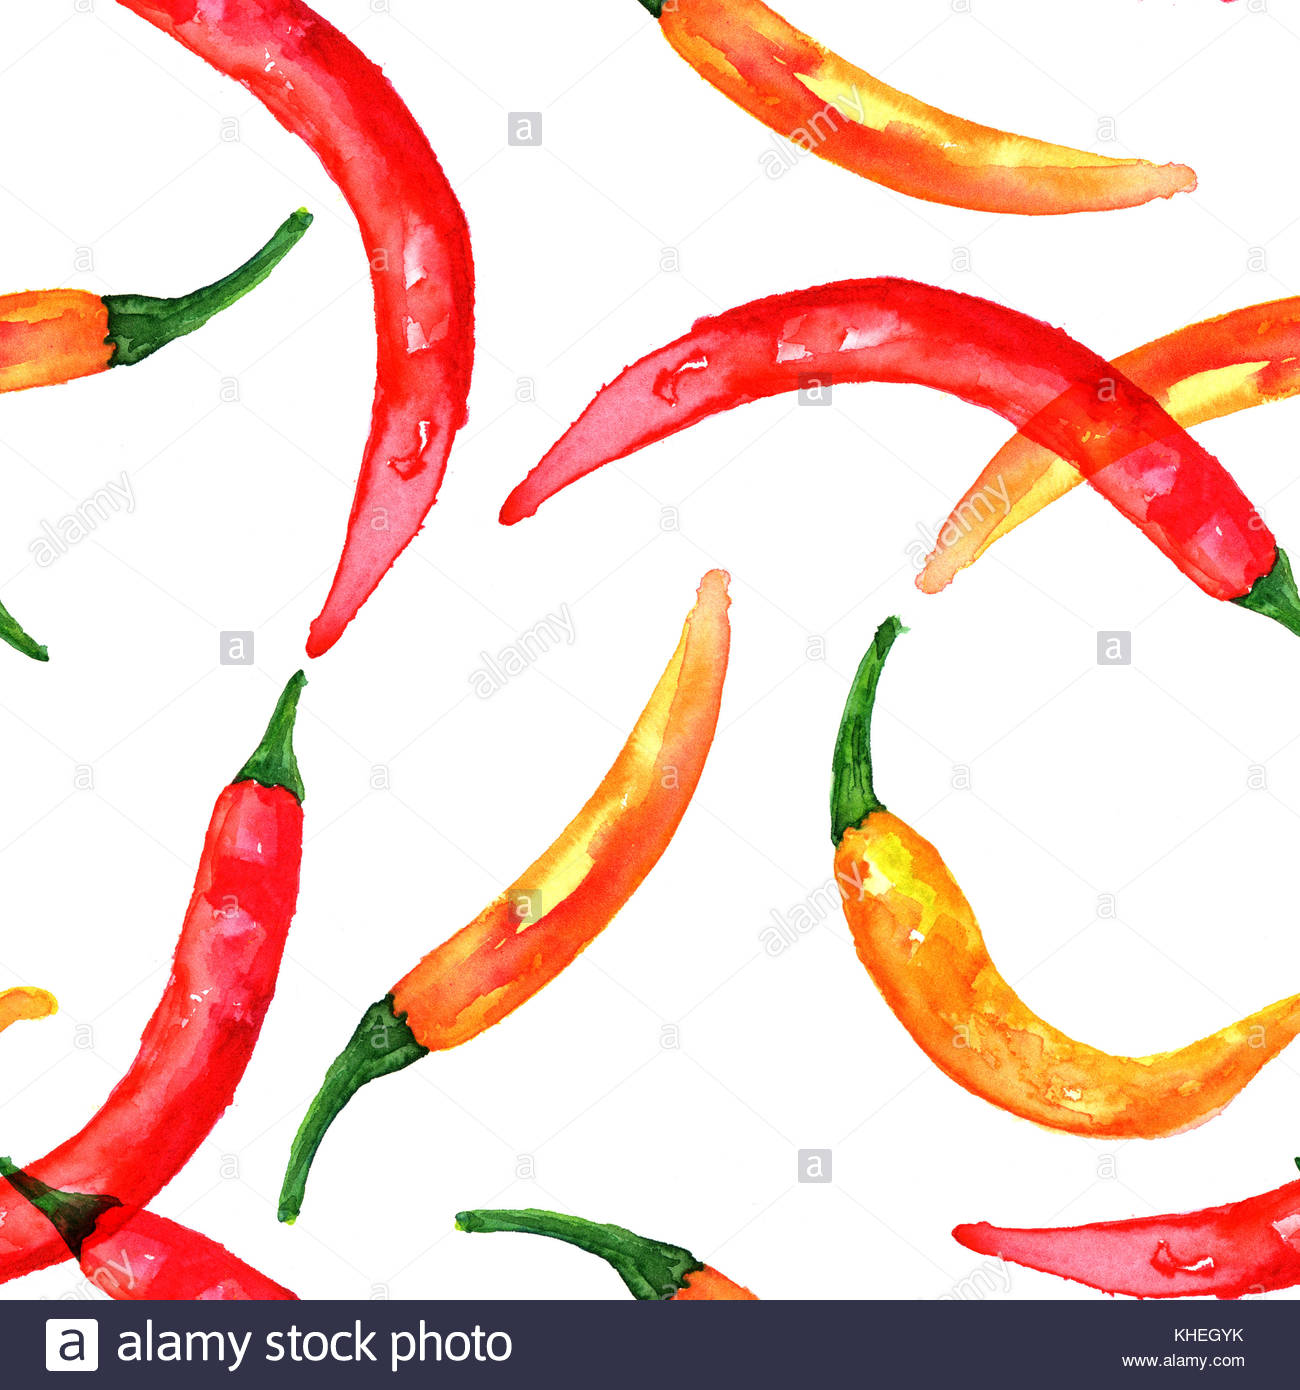 1300x1390 Chili Pepper Drawing Stock Photos Amp Chili Pepper Drawing Stock